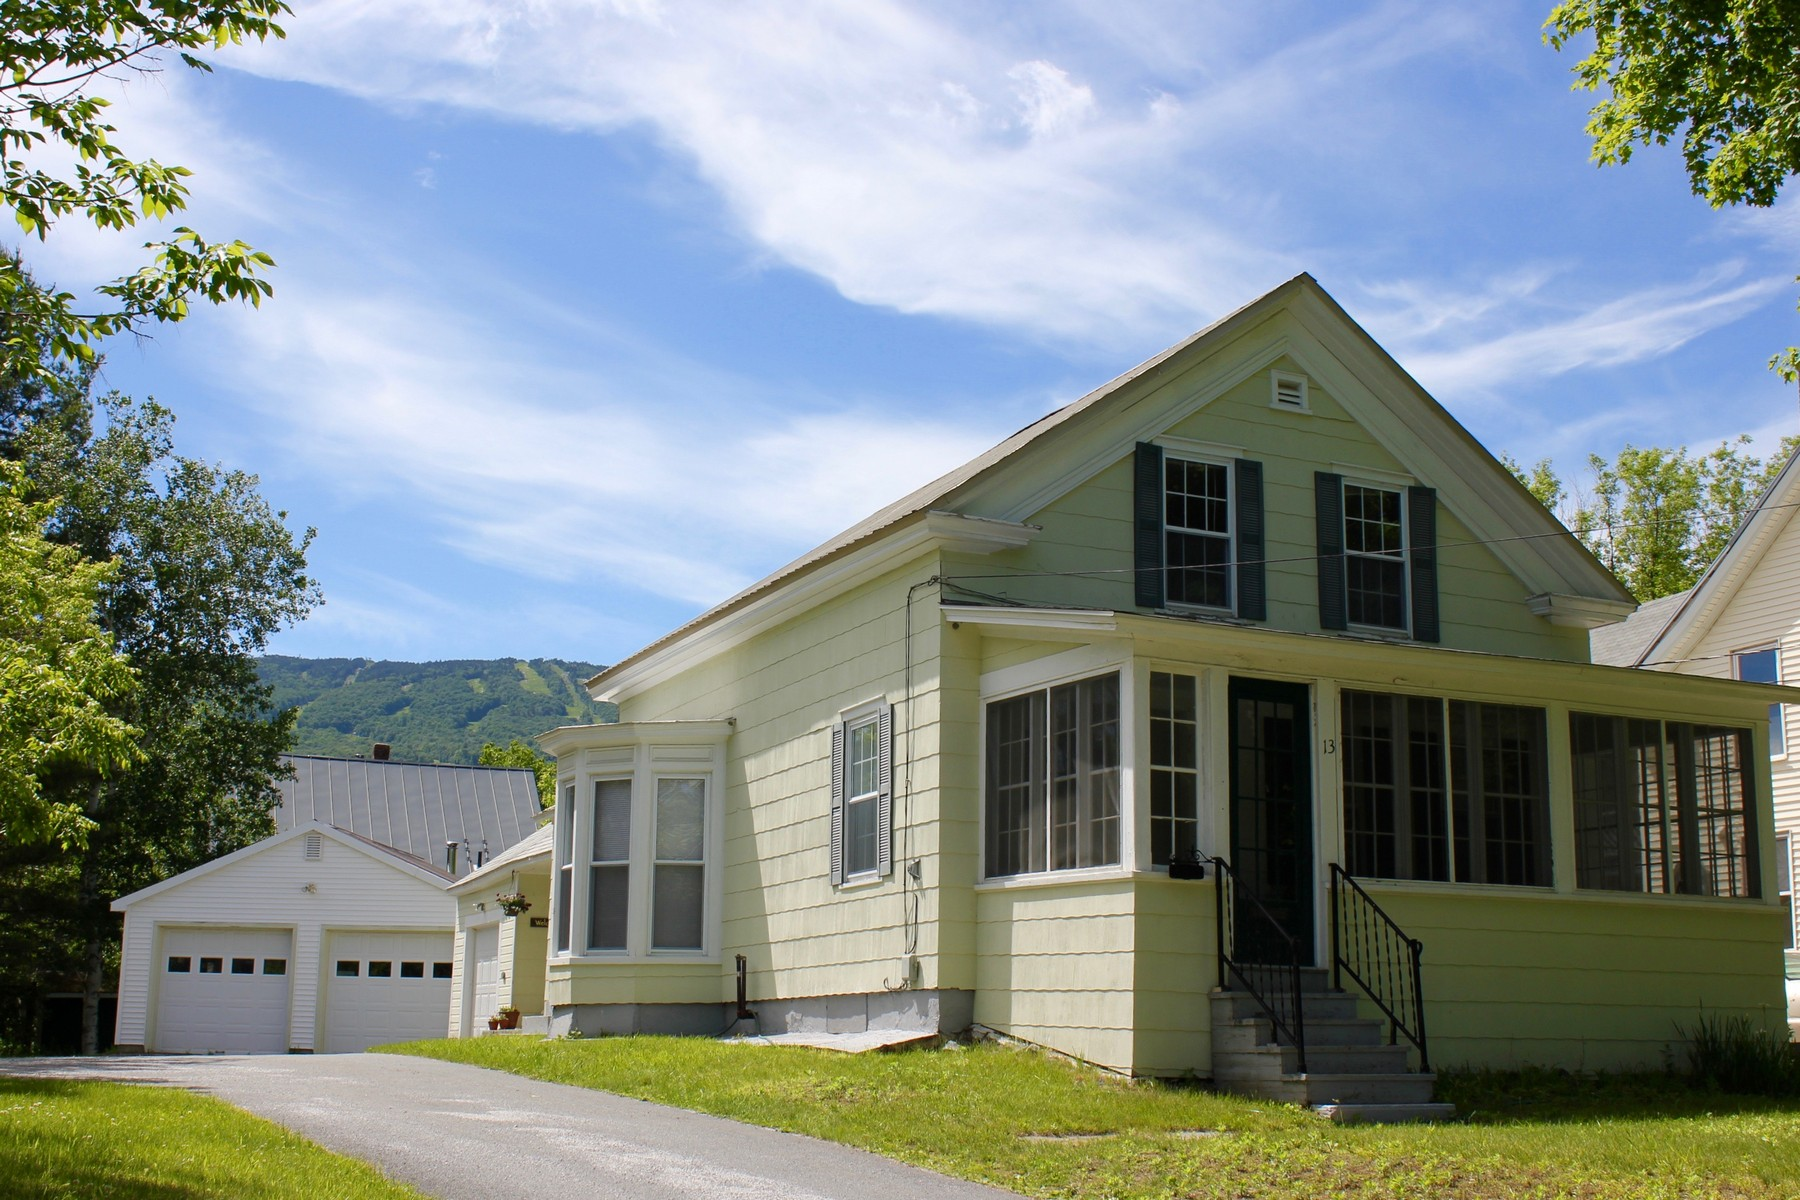 Single Family Home for Sale at Ludlow Village on Shuttle Route 13 Depot St Ludlow, Vermont, 05149 United States